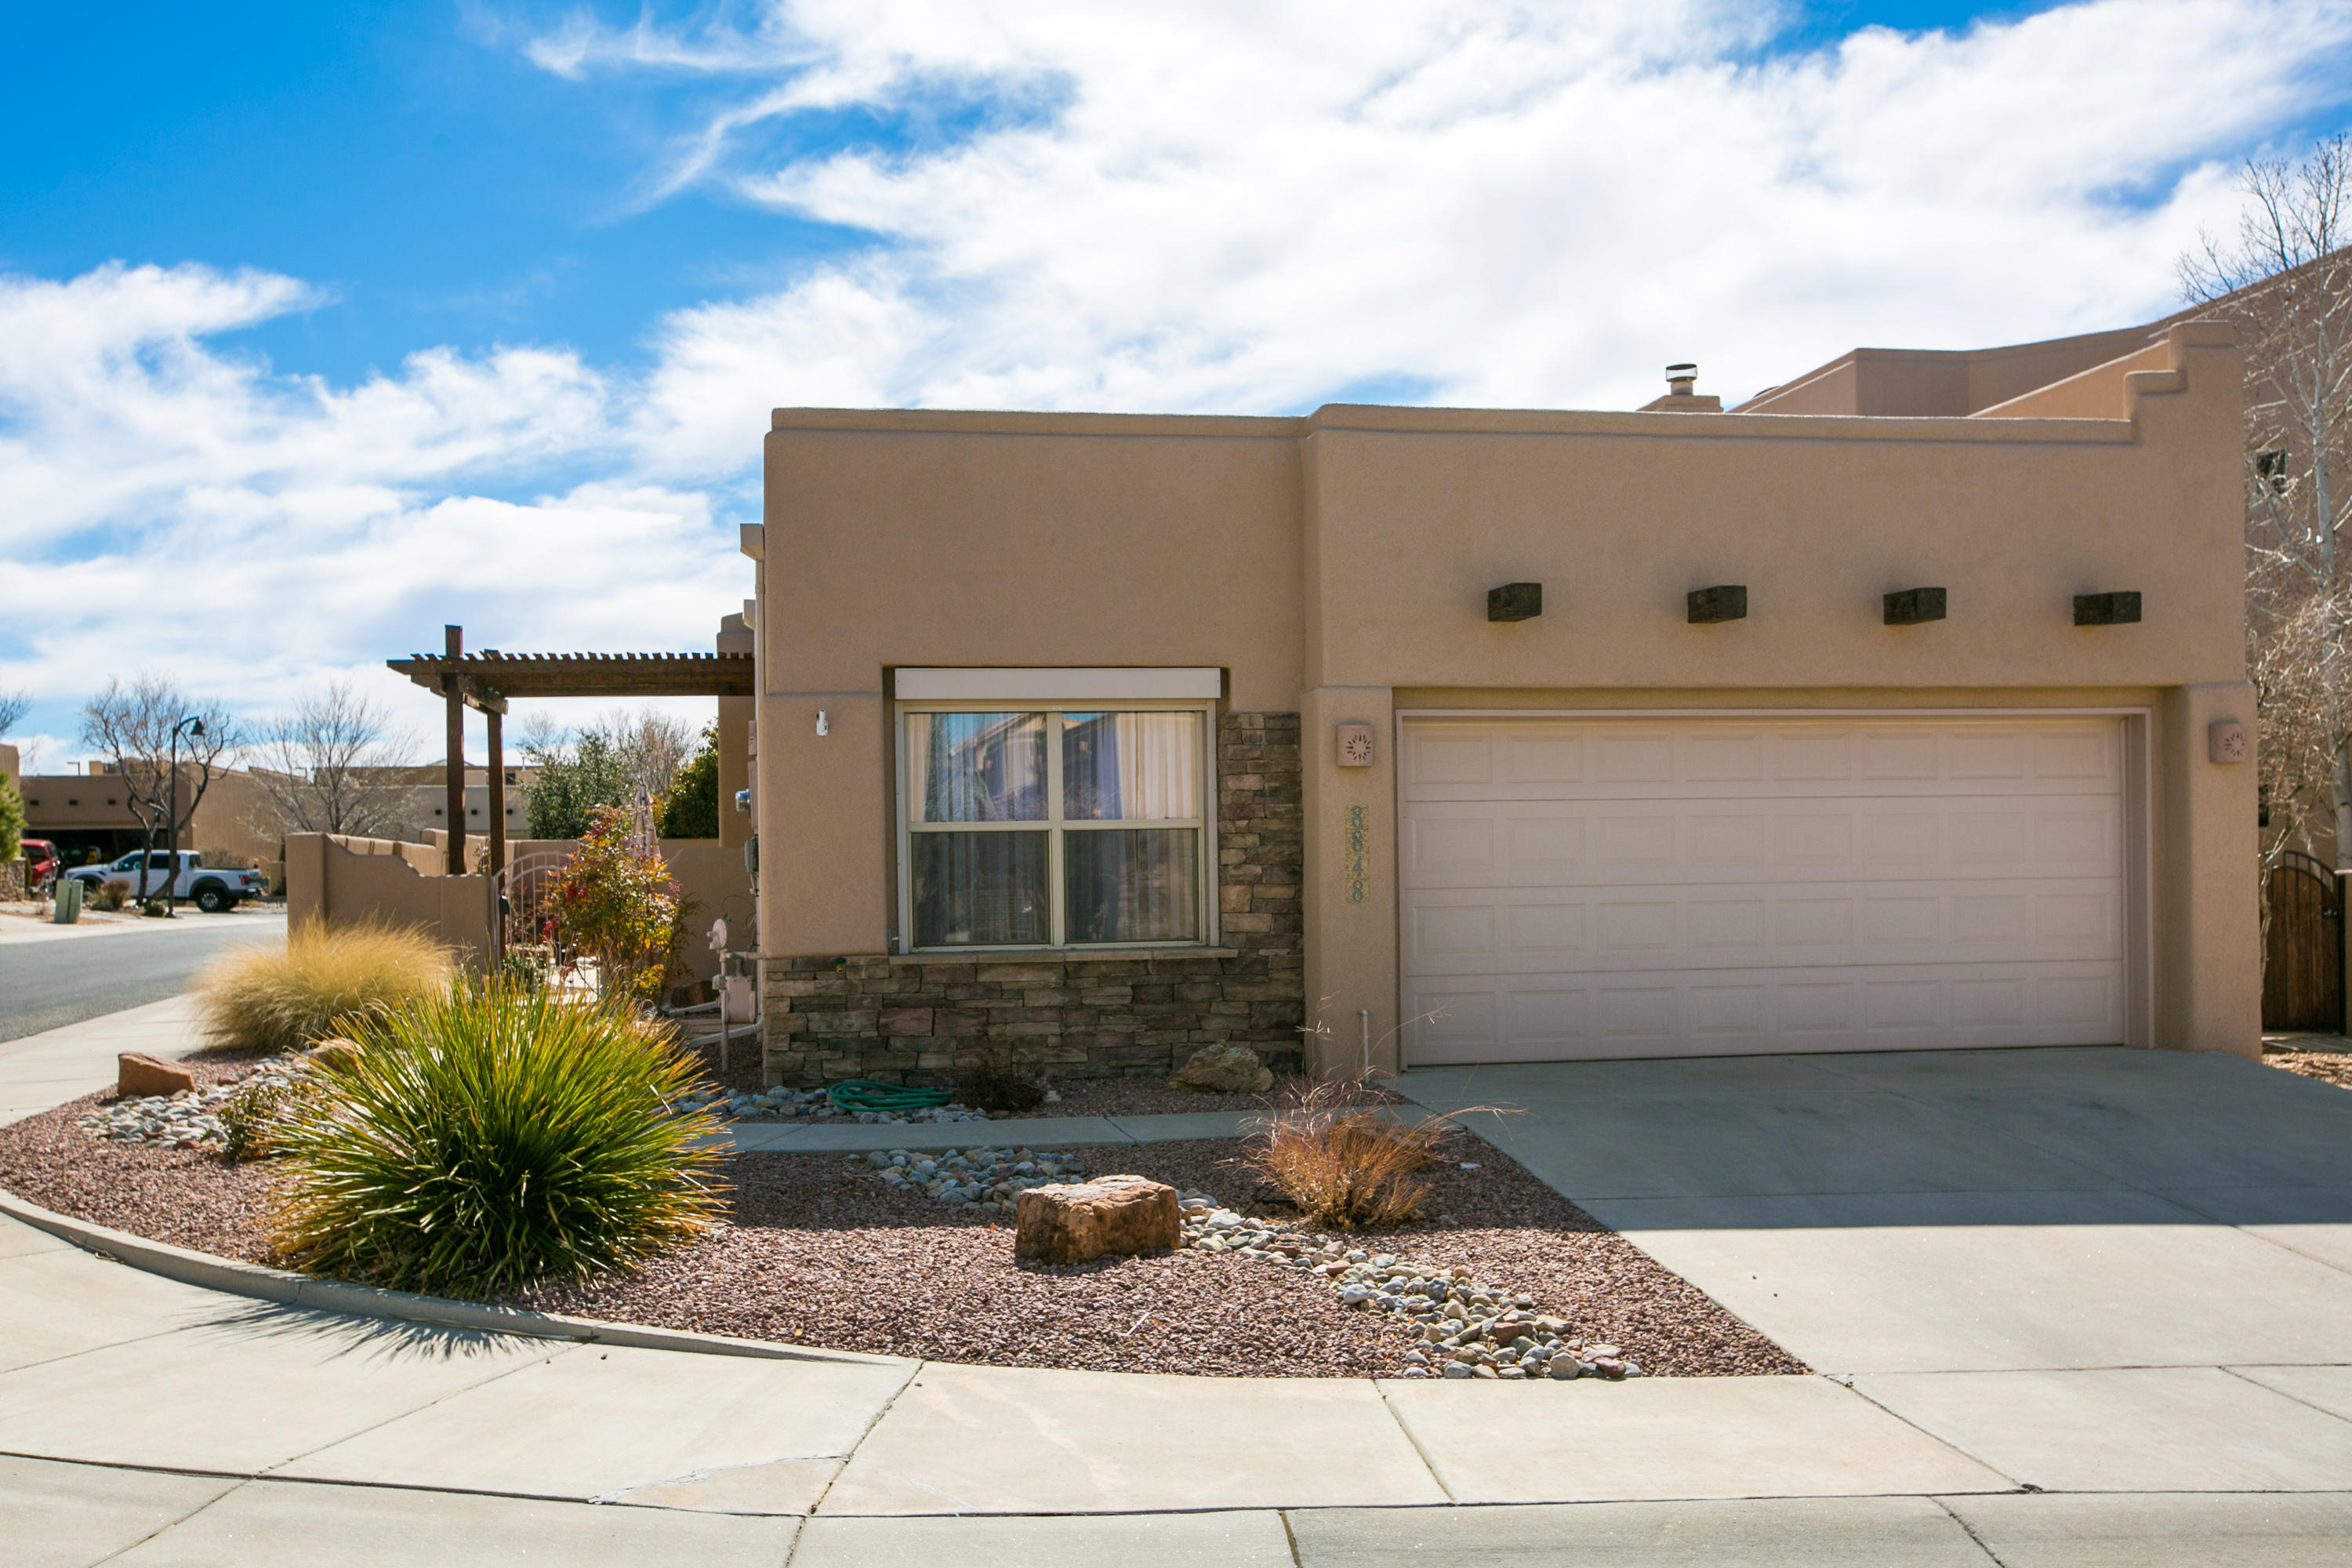 This great single story home is located on a corner lot in the Desert Ridge gated community. This great community is located within walking distance to Albertsons & Trader Joes, multiple local restaurants, and a variety of other services. It is also located in one of Albuquerque's most desirable school districts. The home features a bright and open floor plan with tall ceilings and lots of natural light. The great room is open to the kitchen and dining room, and the master & guest bedroom are on opposite ends of the house for privacy. There is also an office which could be used as a 3rd bedroom. Updates include hardwood floors in the great room, dining room & bedrooms, and new stucco that was completed in the last 2 years. Refrigerated air will keep you cool! Park access from the community